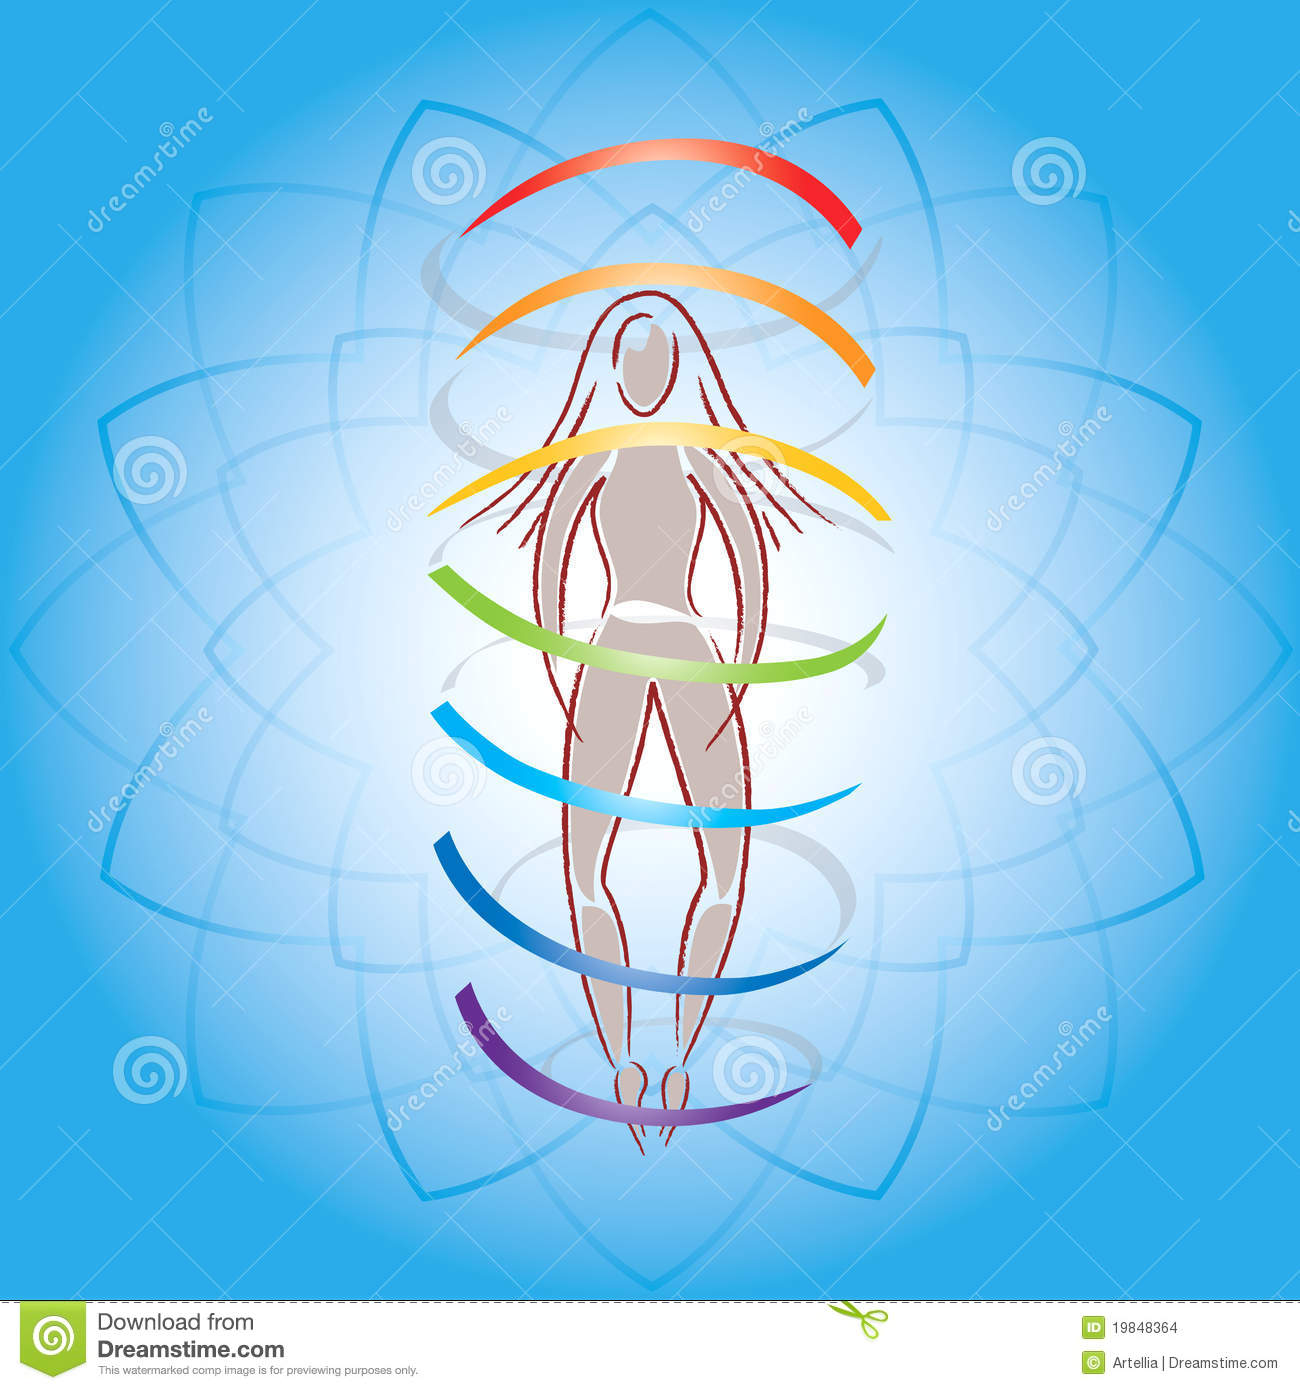 heart beat diagram land cruiser wiring body and aura on lotus flower background stock images - image: 19848364